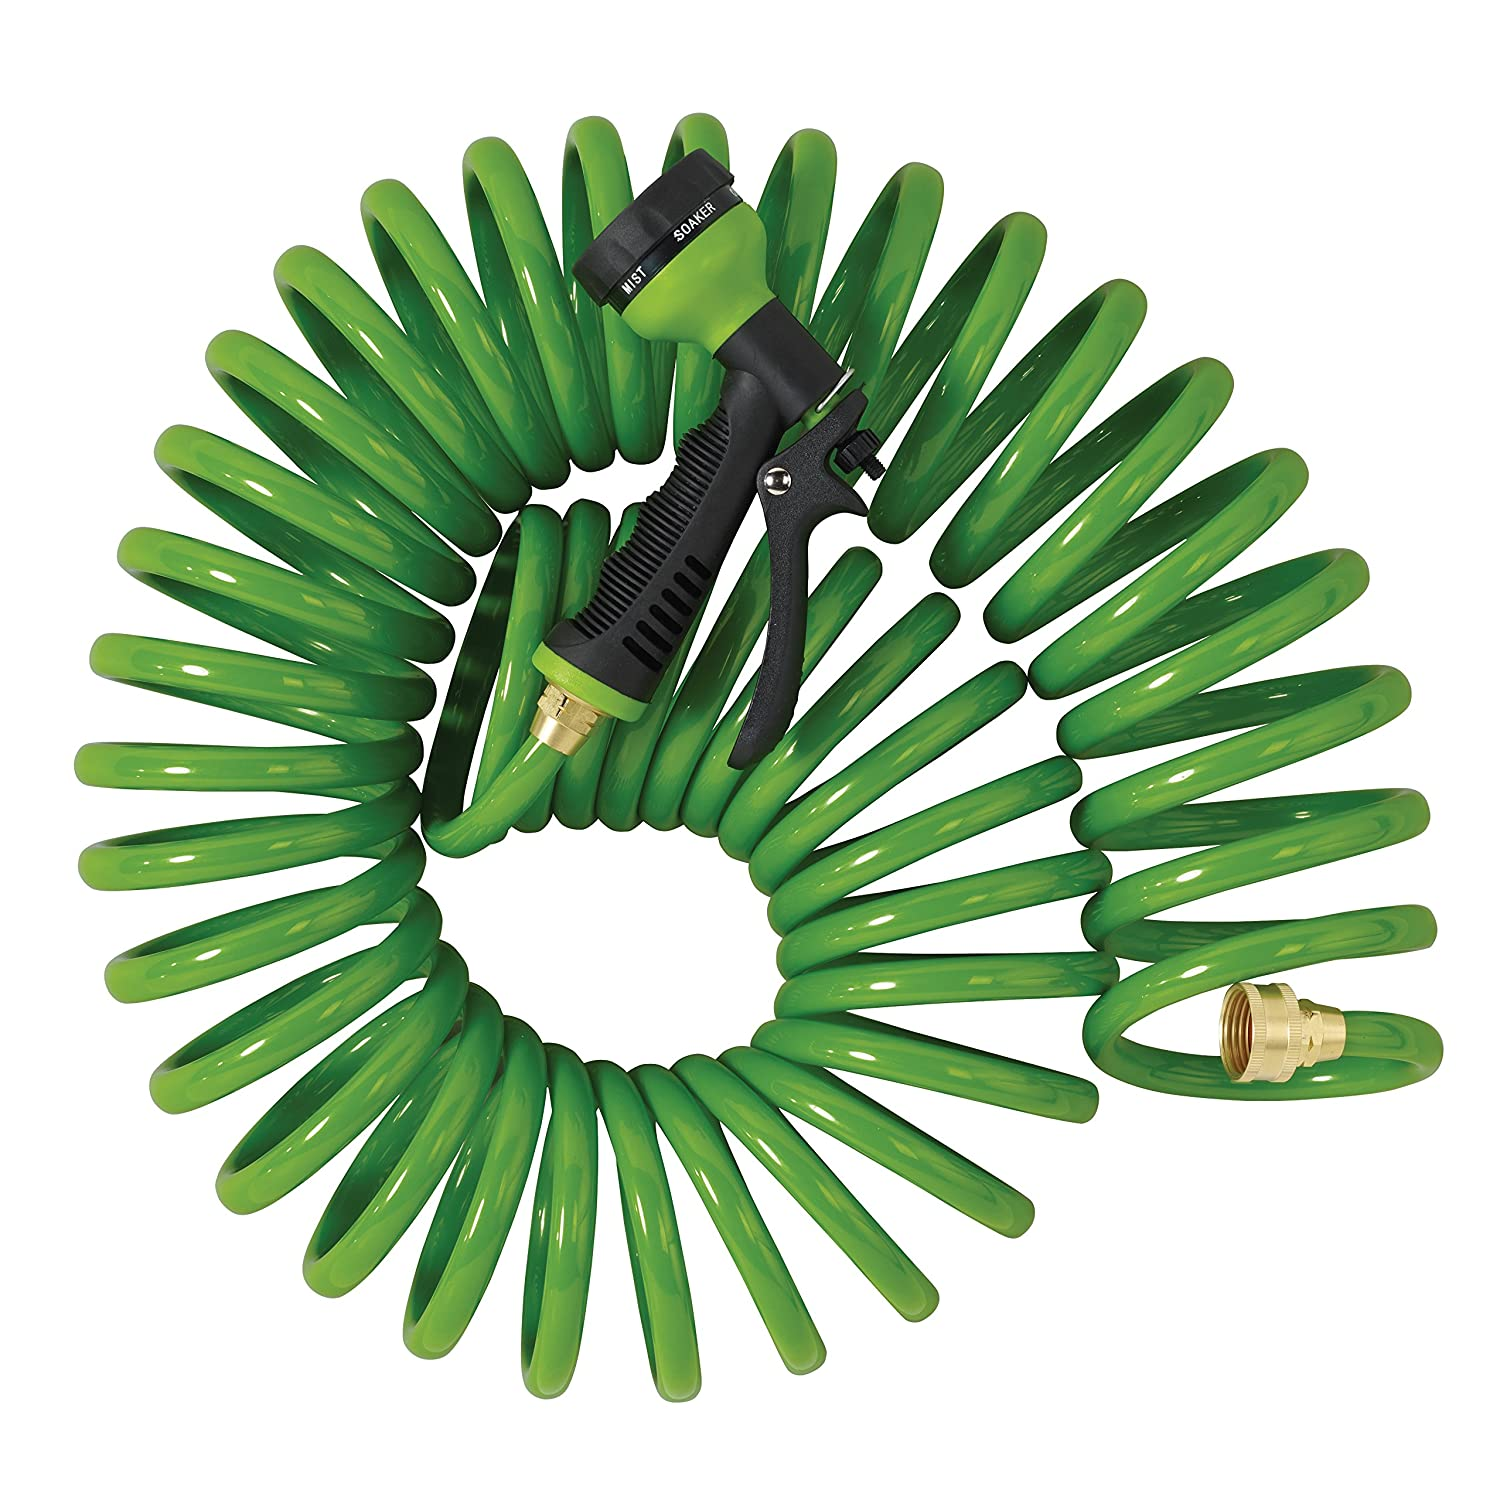 Orbit 27862 25-Foot Coil Hose with Nozzle Green